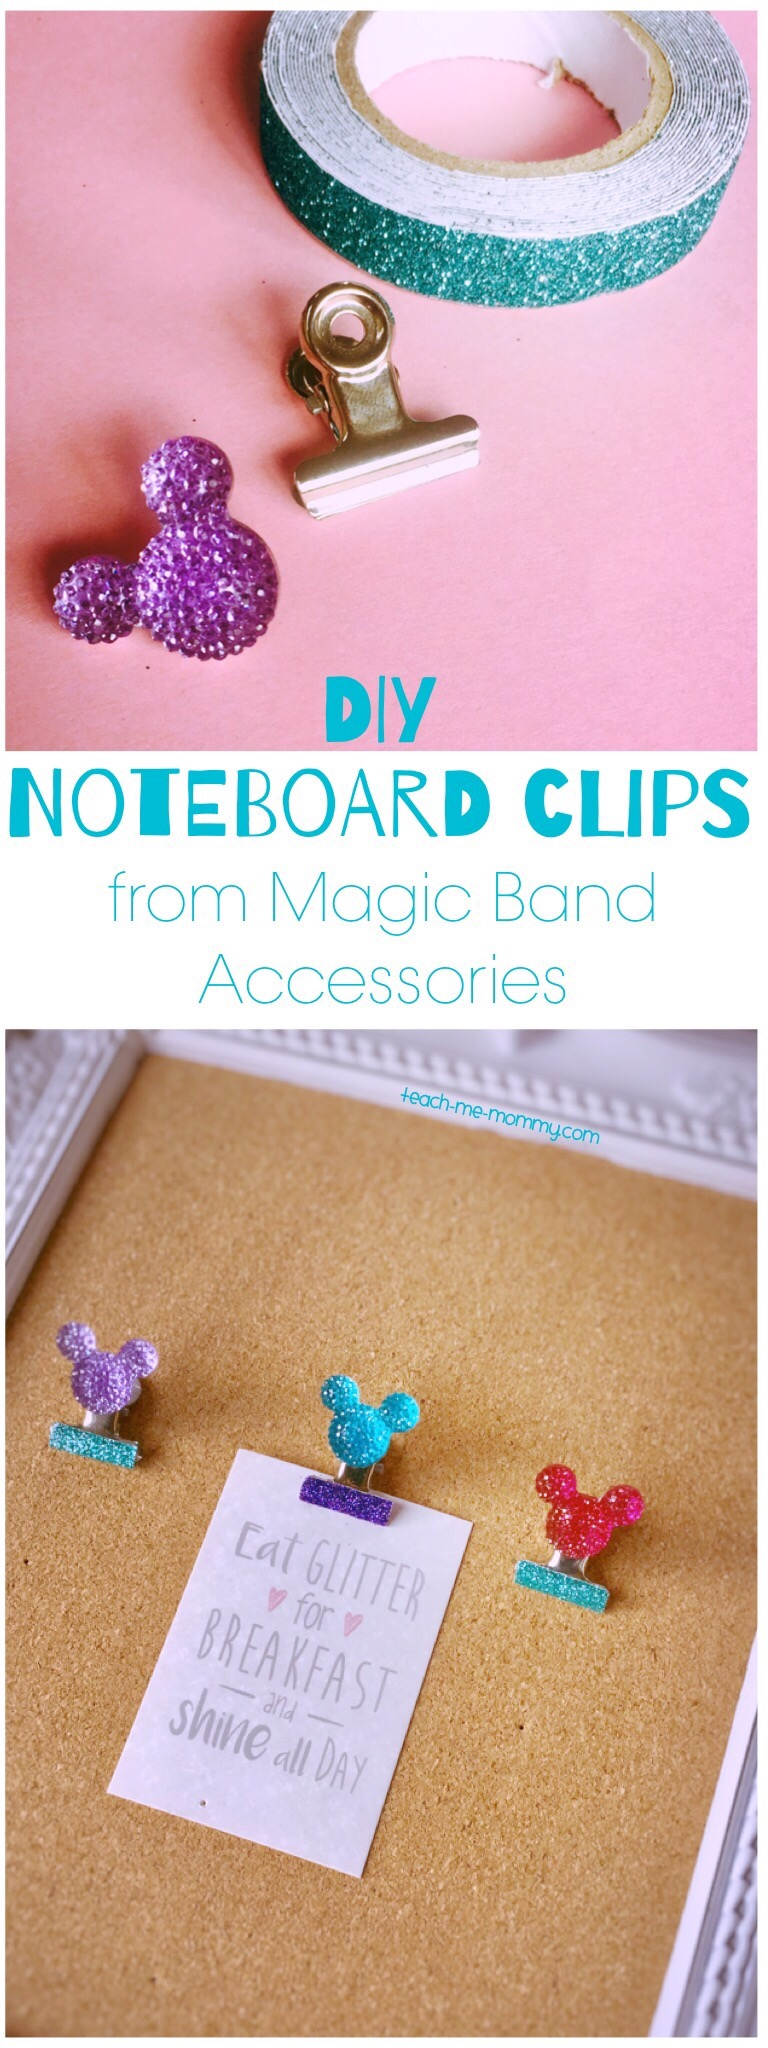 Noteboard clips from Magic Band accessories